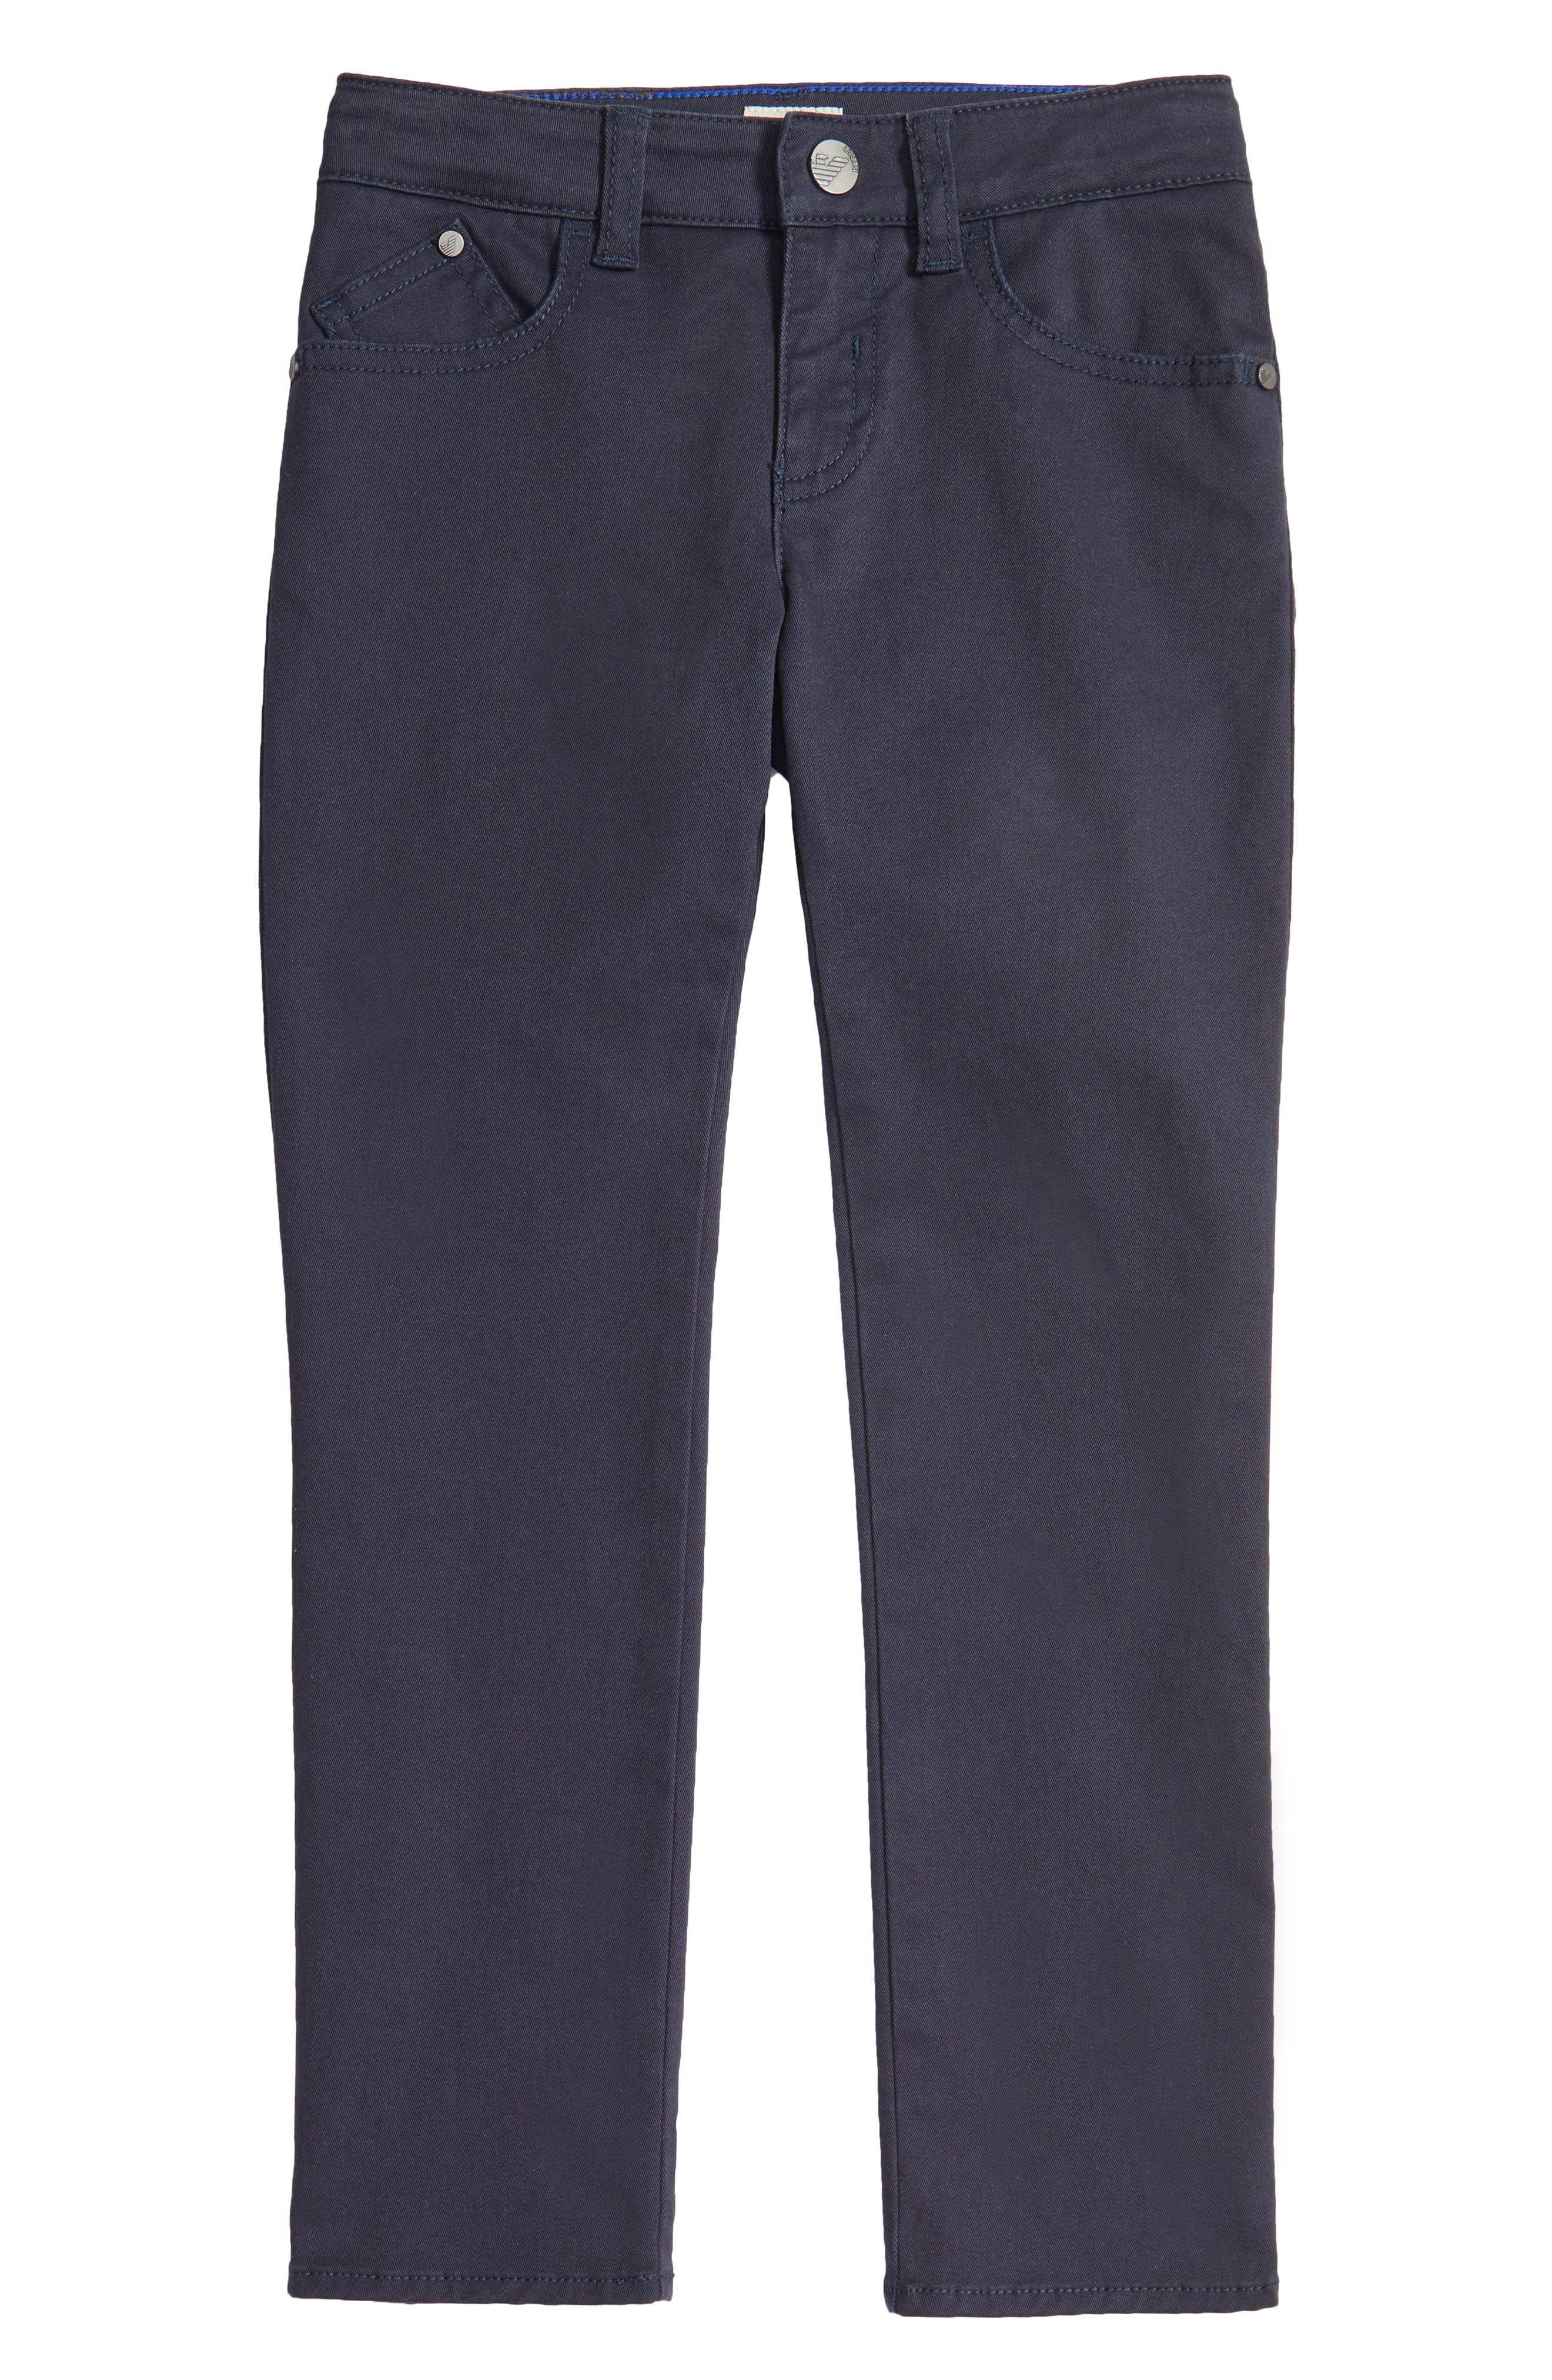 Alternate Image 1 Selected - Armani Junior Stretch Cotton Chino Pants (Little Boys & Big Boys)